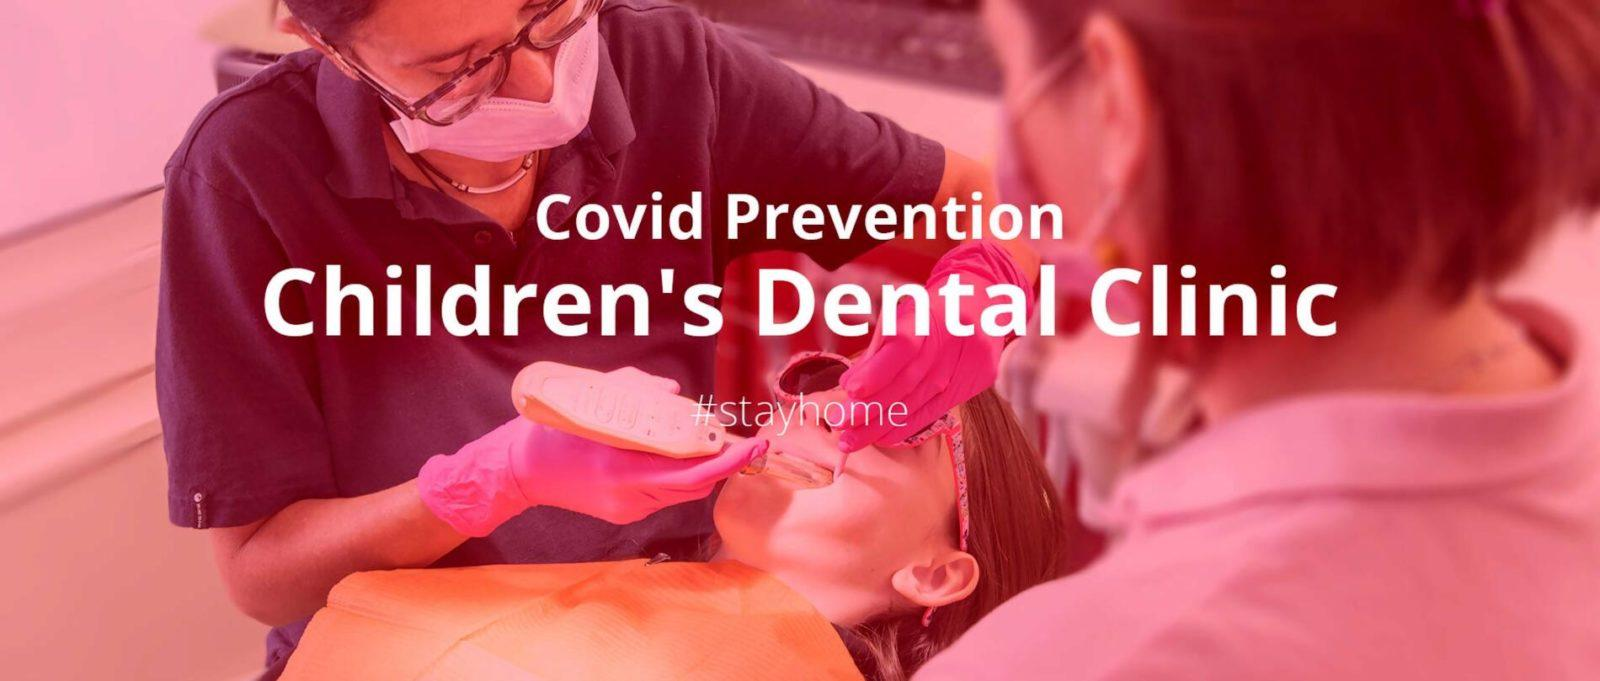 Banner_COVIDPREVENTION_Clinica_Boj_Pediatric_Dentistry_ENG_1920px